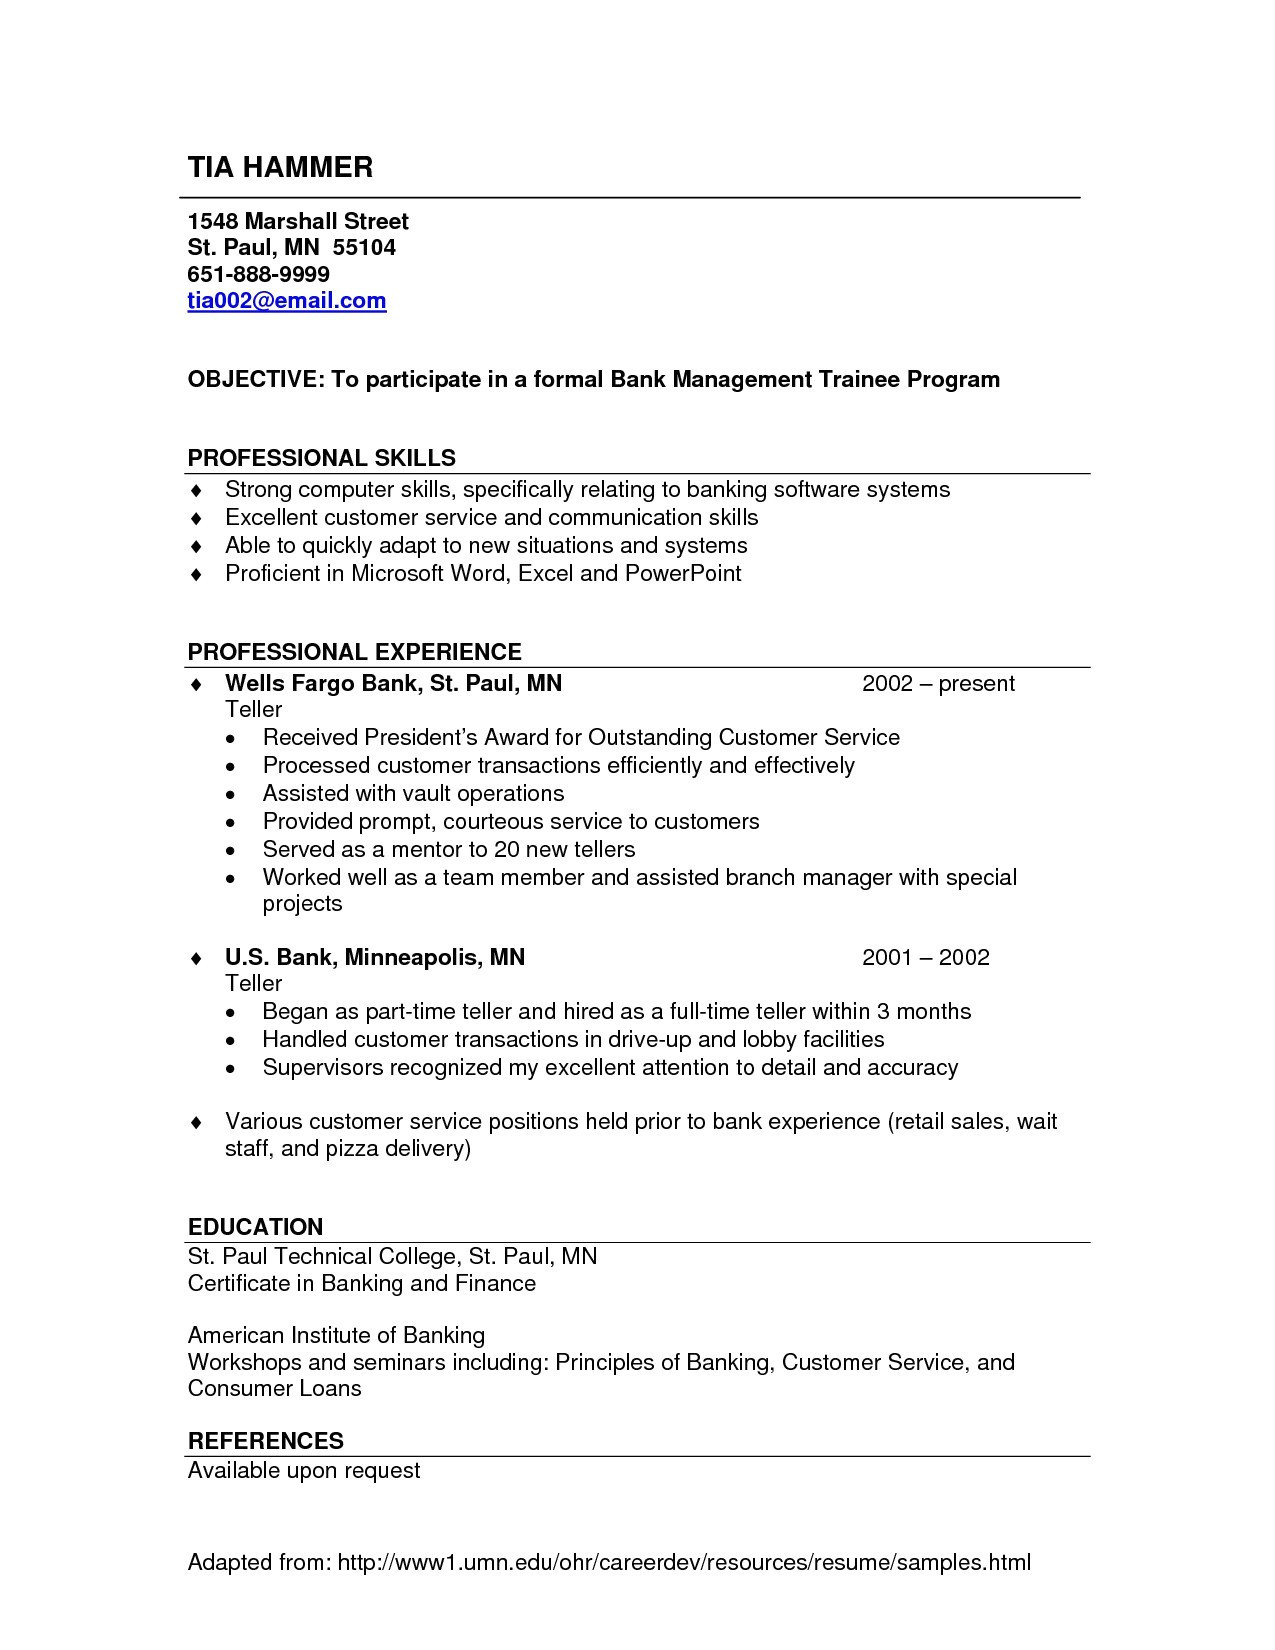 Banker Resume Template - Apa Resume Template New Examples A Resume Fresh Resume Examples 0d